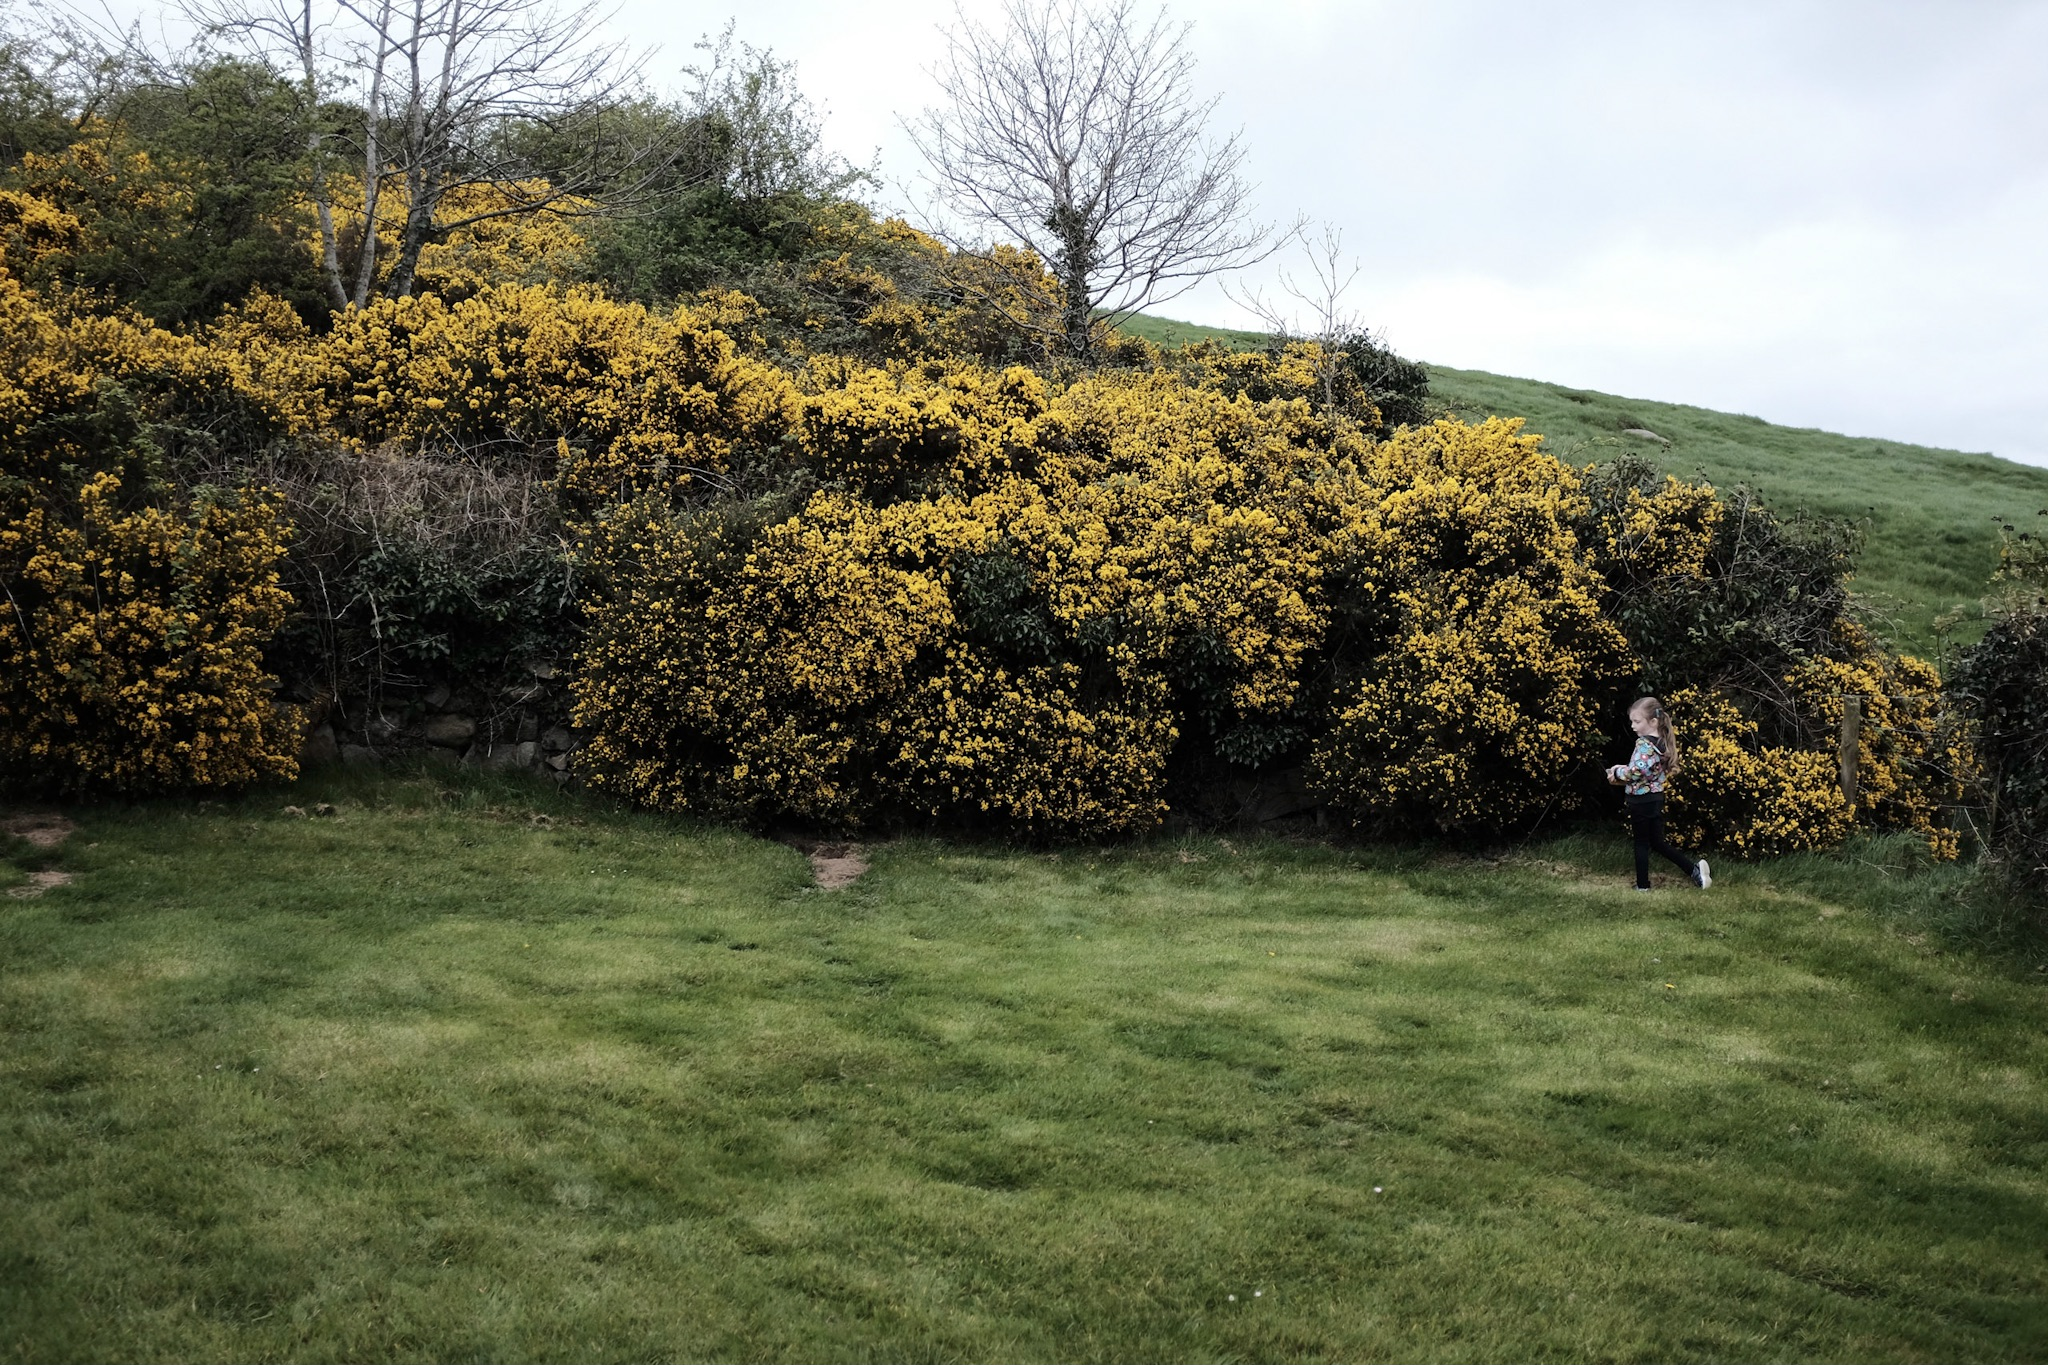 Lots of whin bushes.